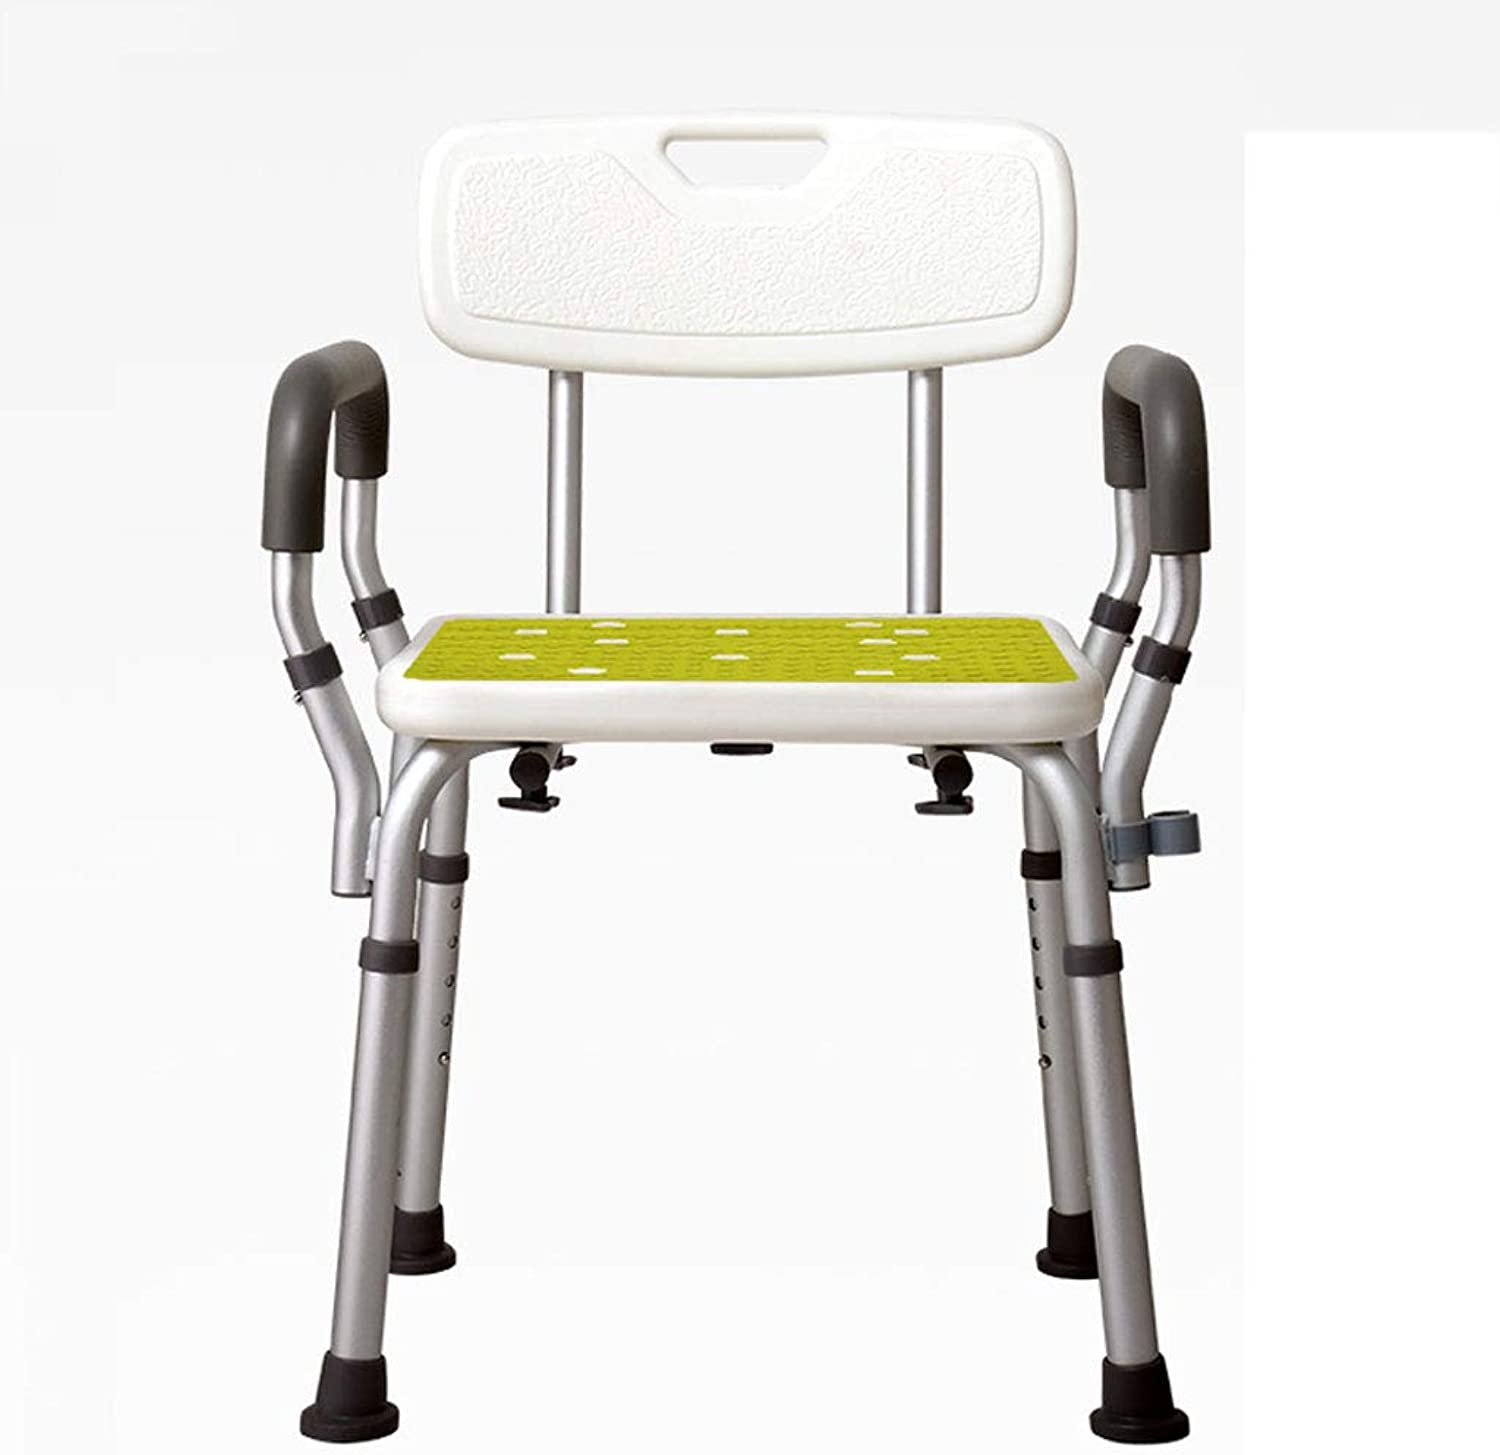 Aluminum Shower Bench, Adjustable Bathroom Stools and Benches with Removable Back & Handle